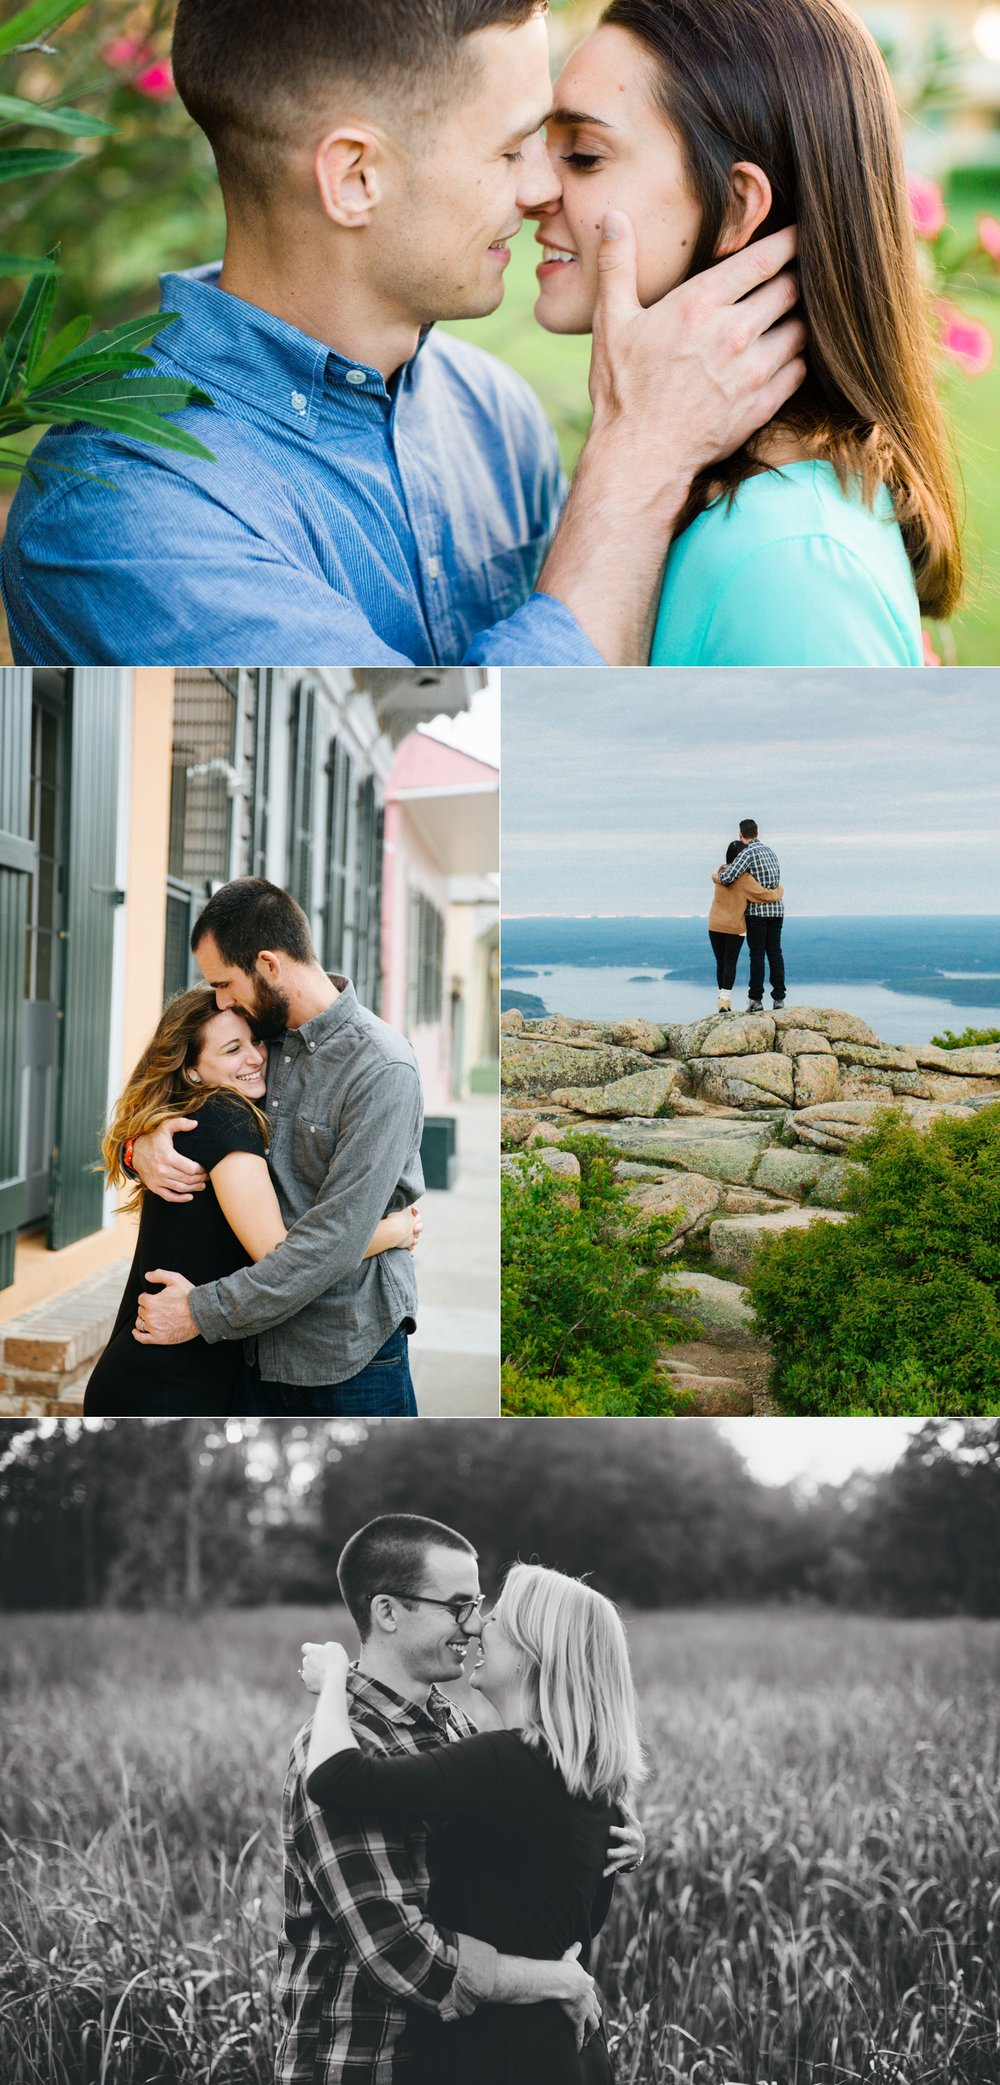 Jake & Katie Photography Best of Couples 2016-044.jpg